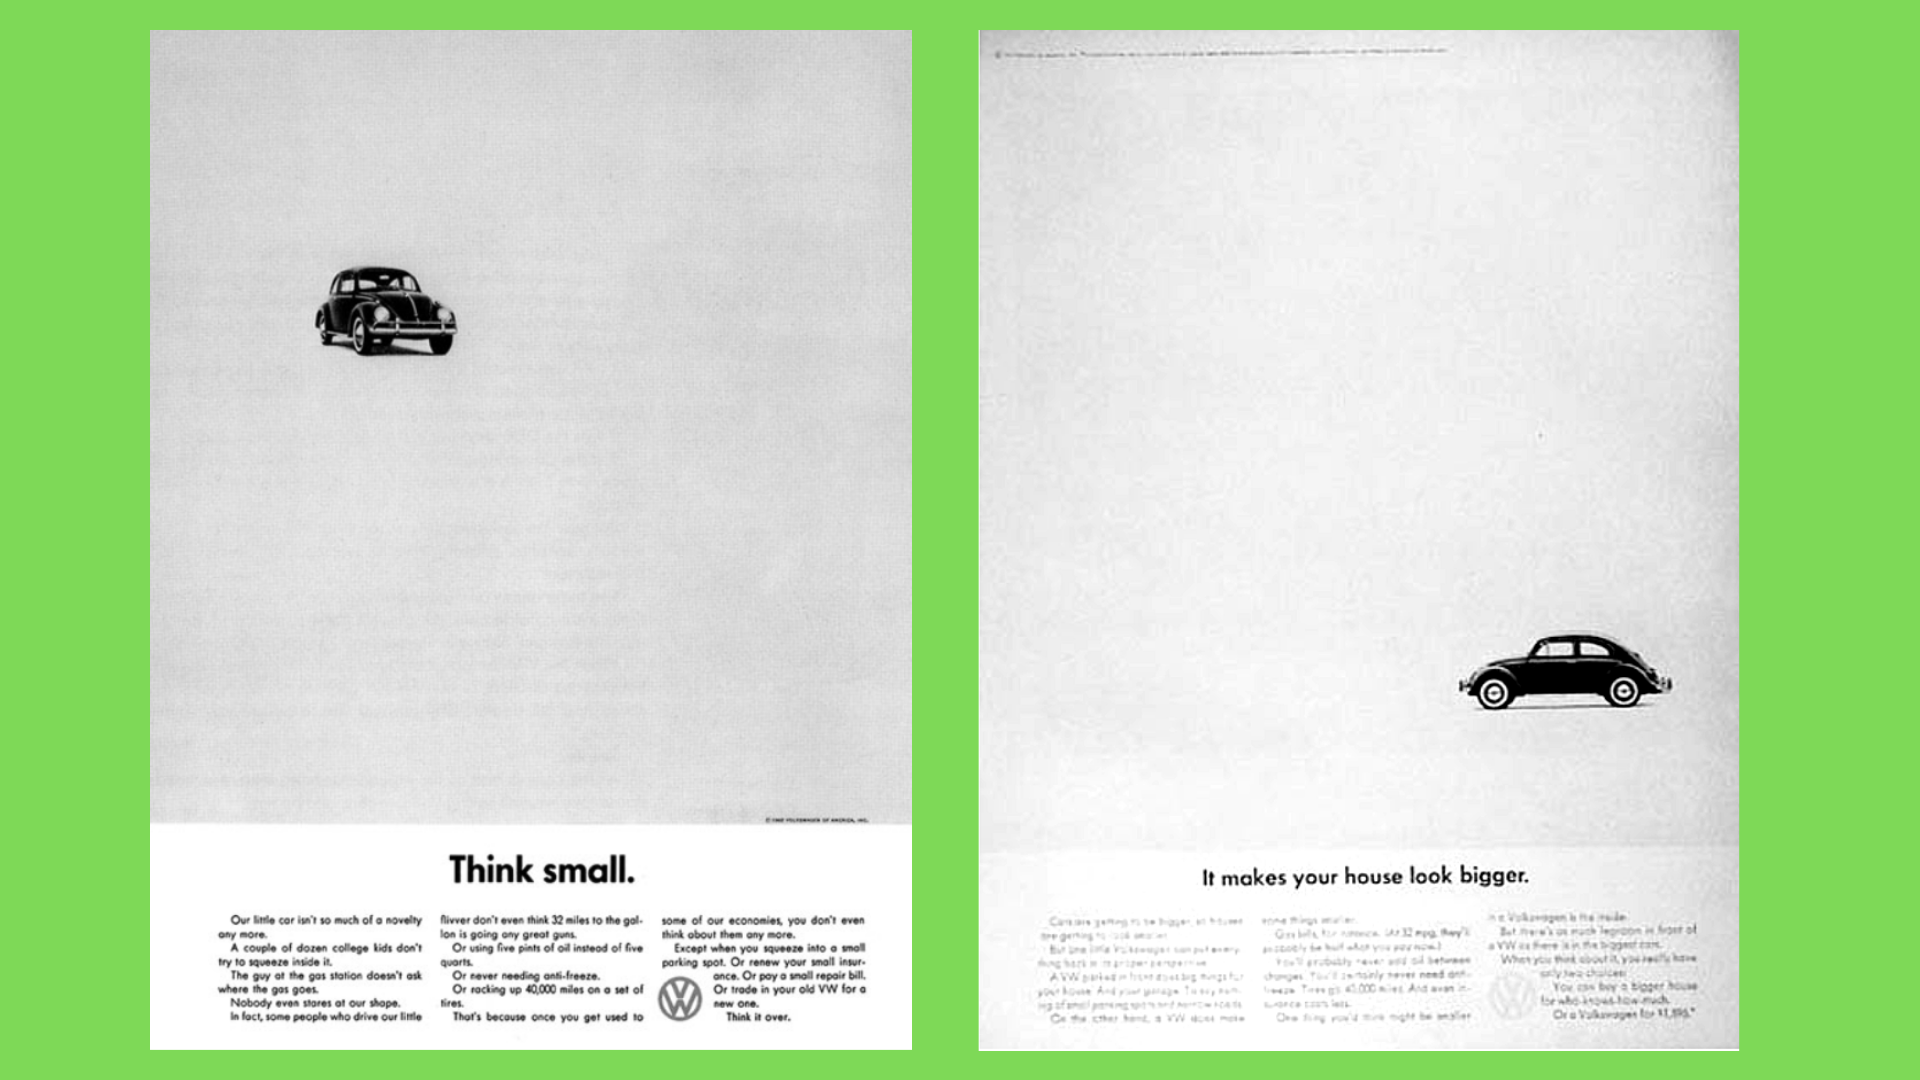 While others were trying to live big, Volkswagen promoted a simple campaign about thinking small, and won.